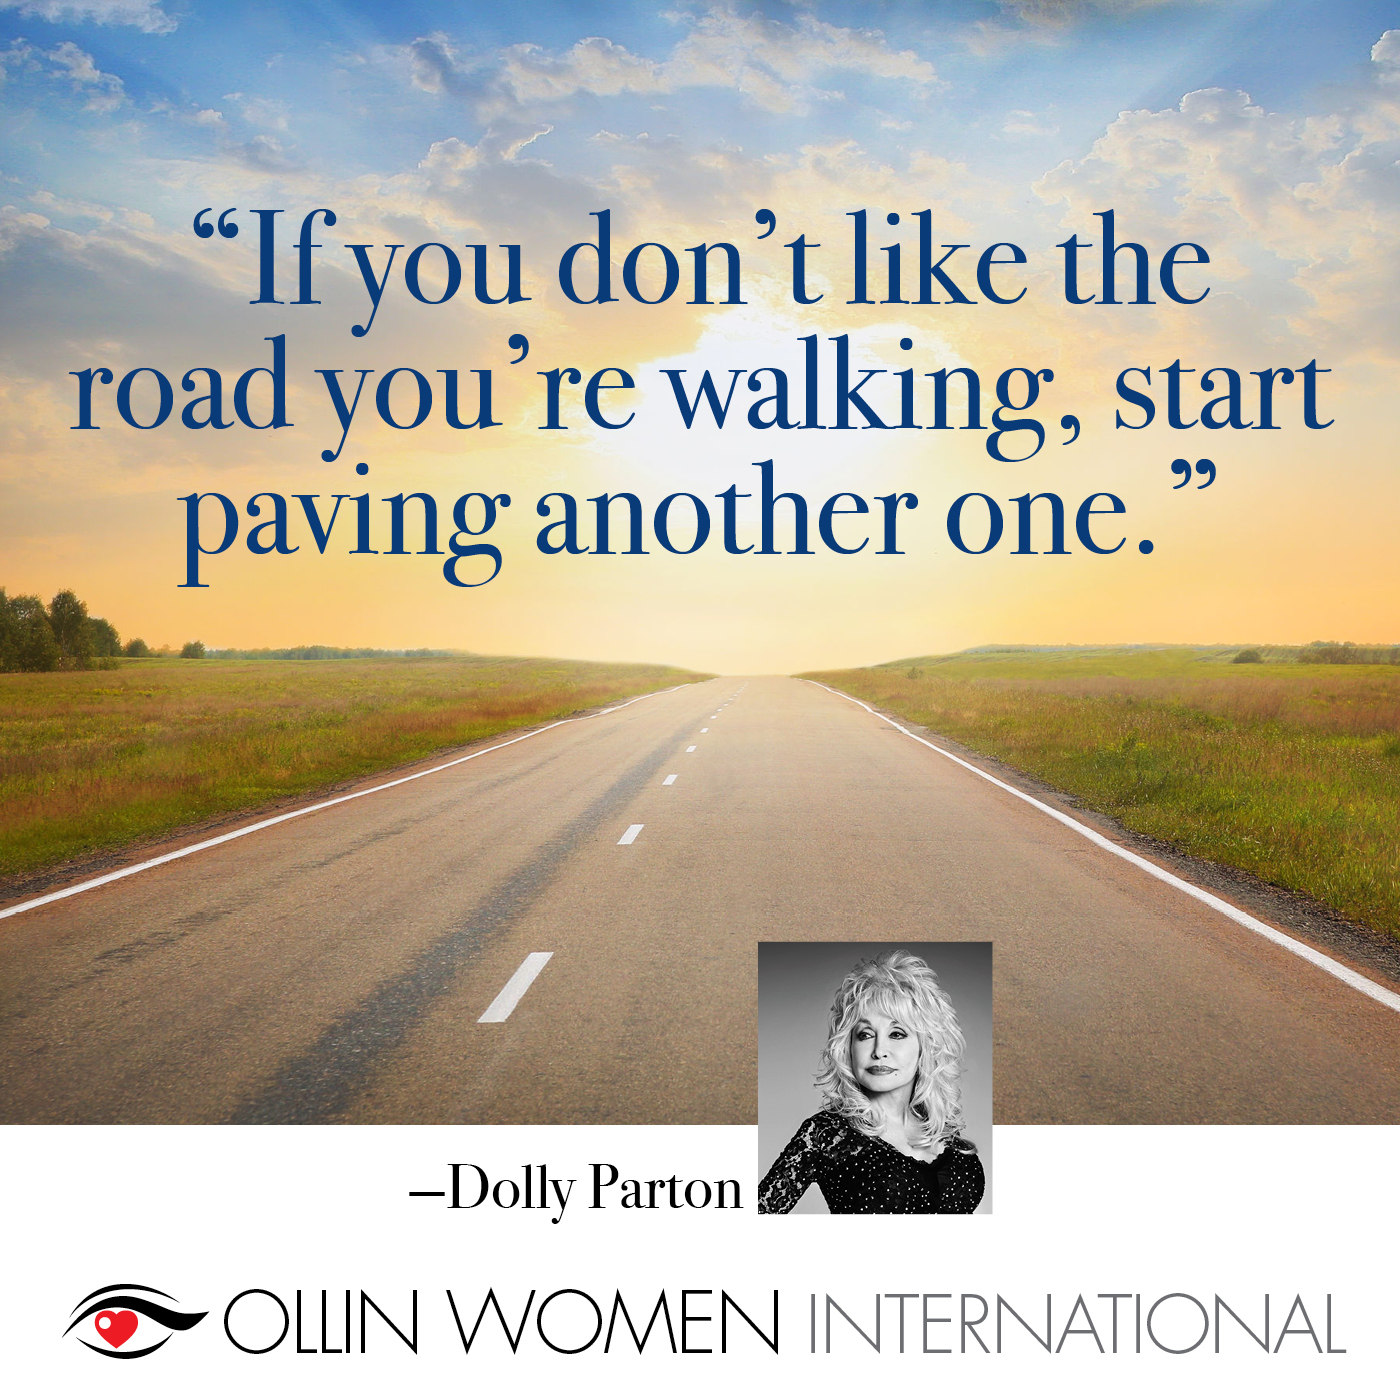 If you don't like the road you're walking, start paving another one